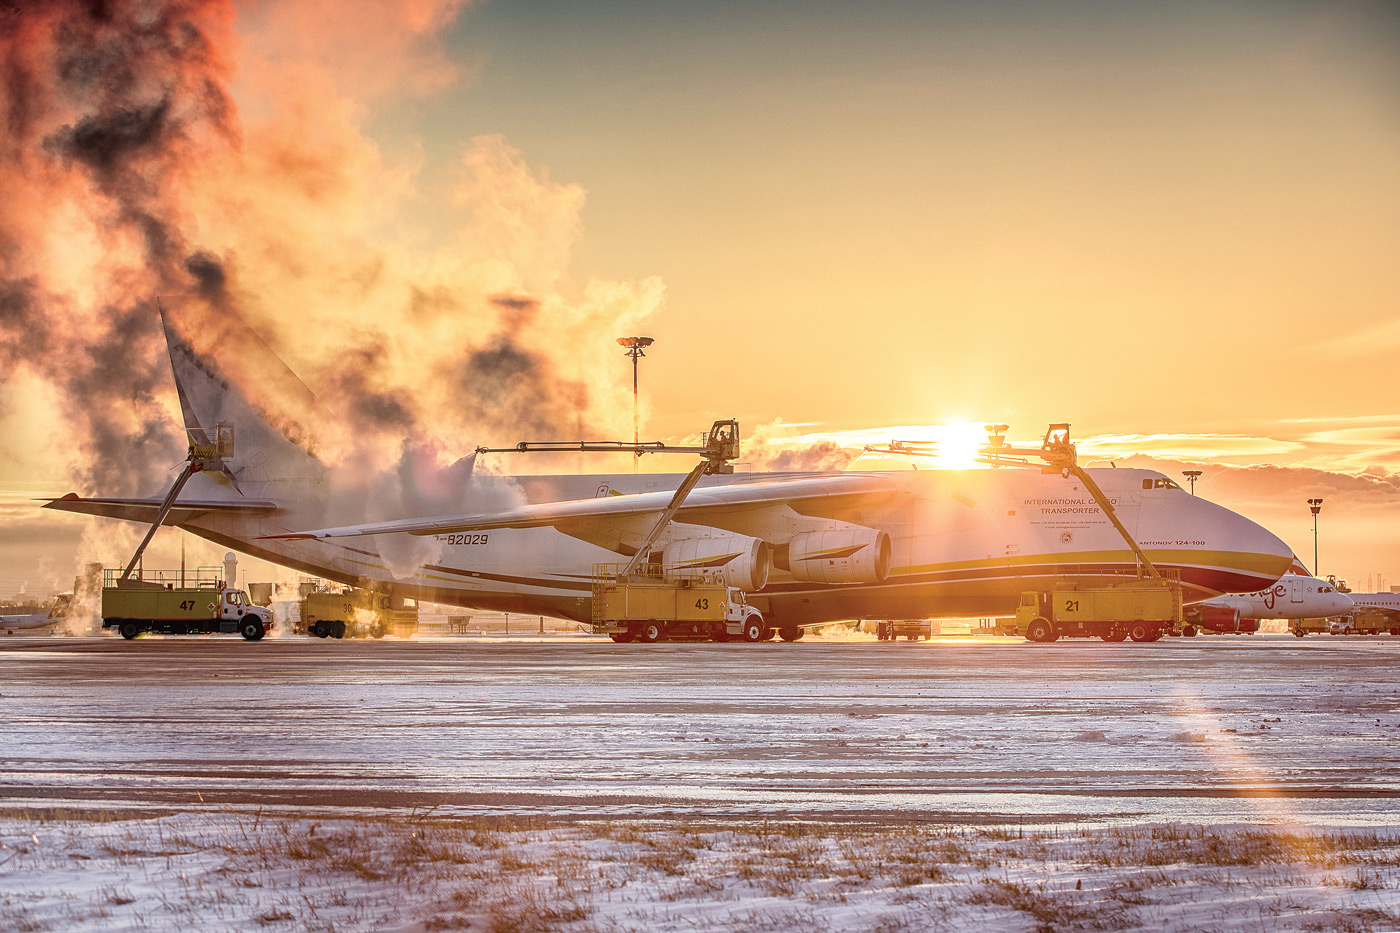 An Antonov AN-124 aircraft is sprayed at the deicing facility at Toronto Pearson International Airport.